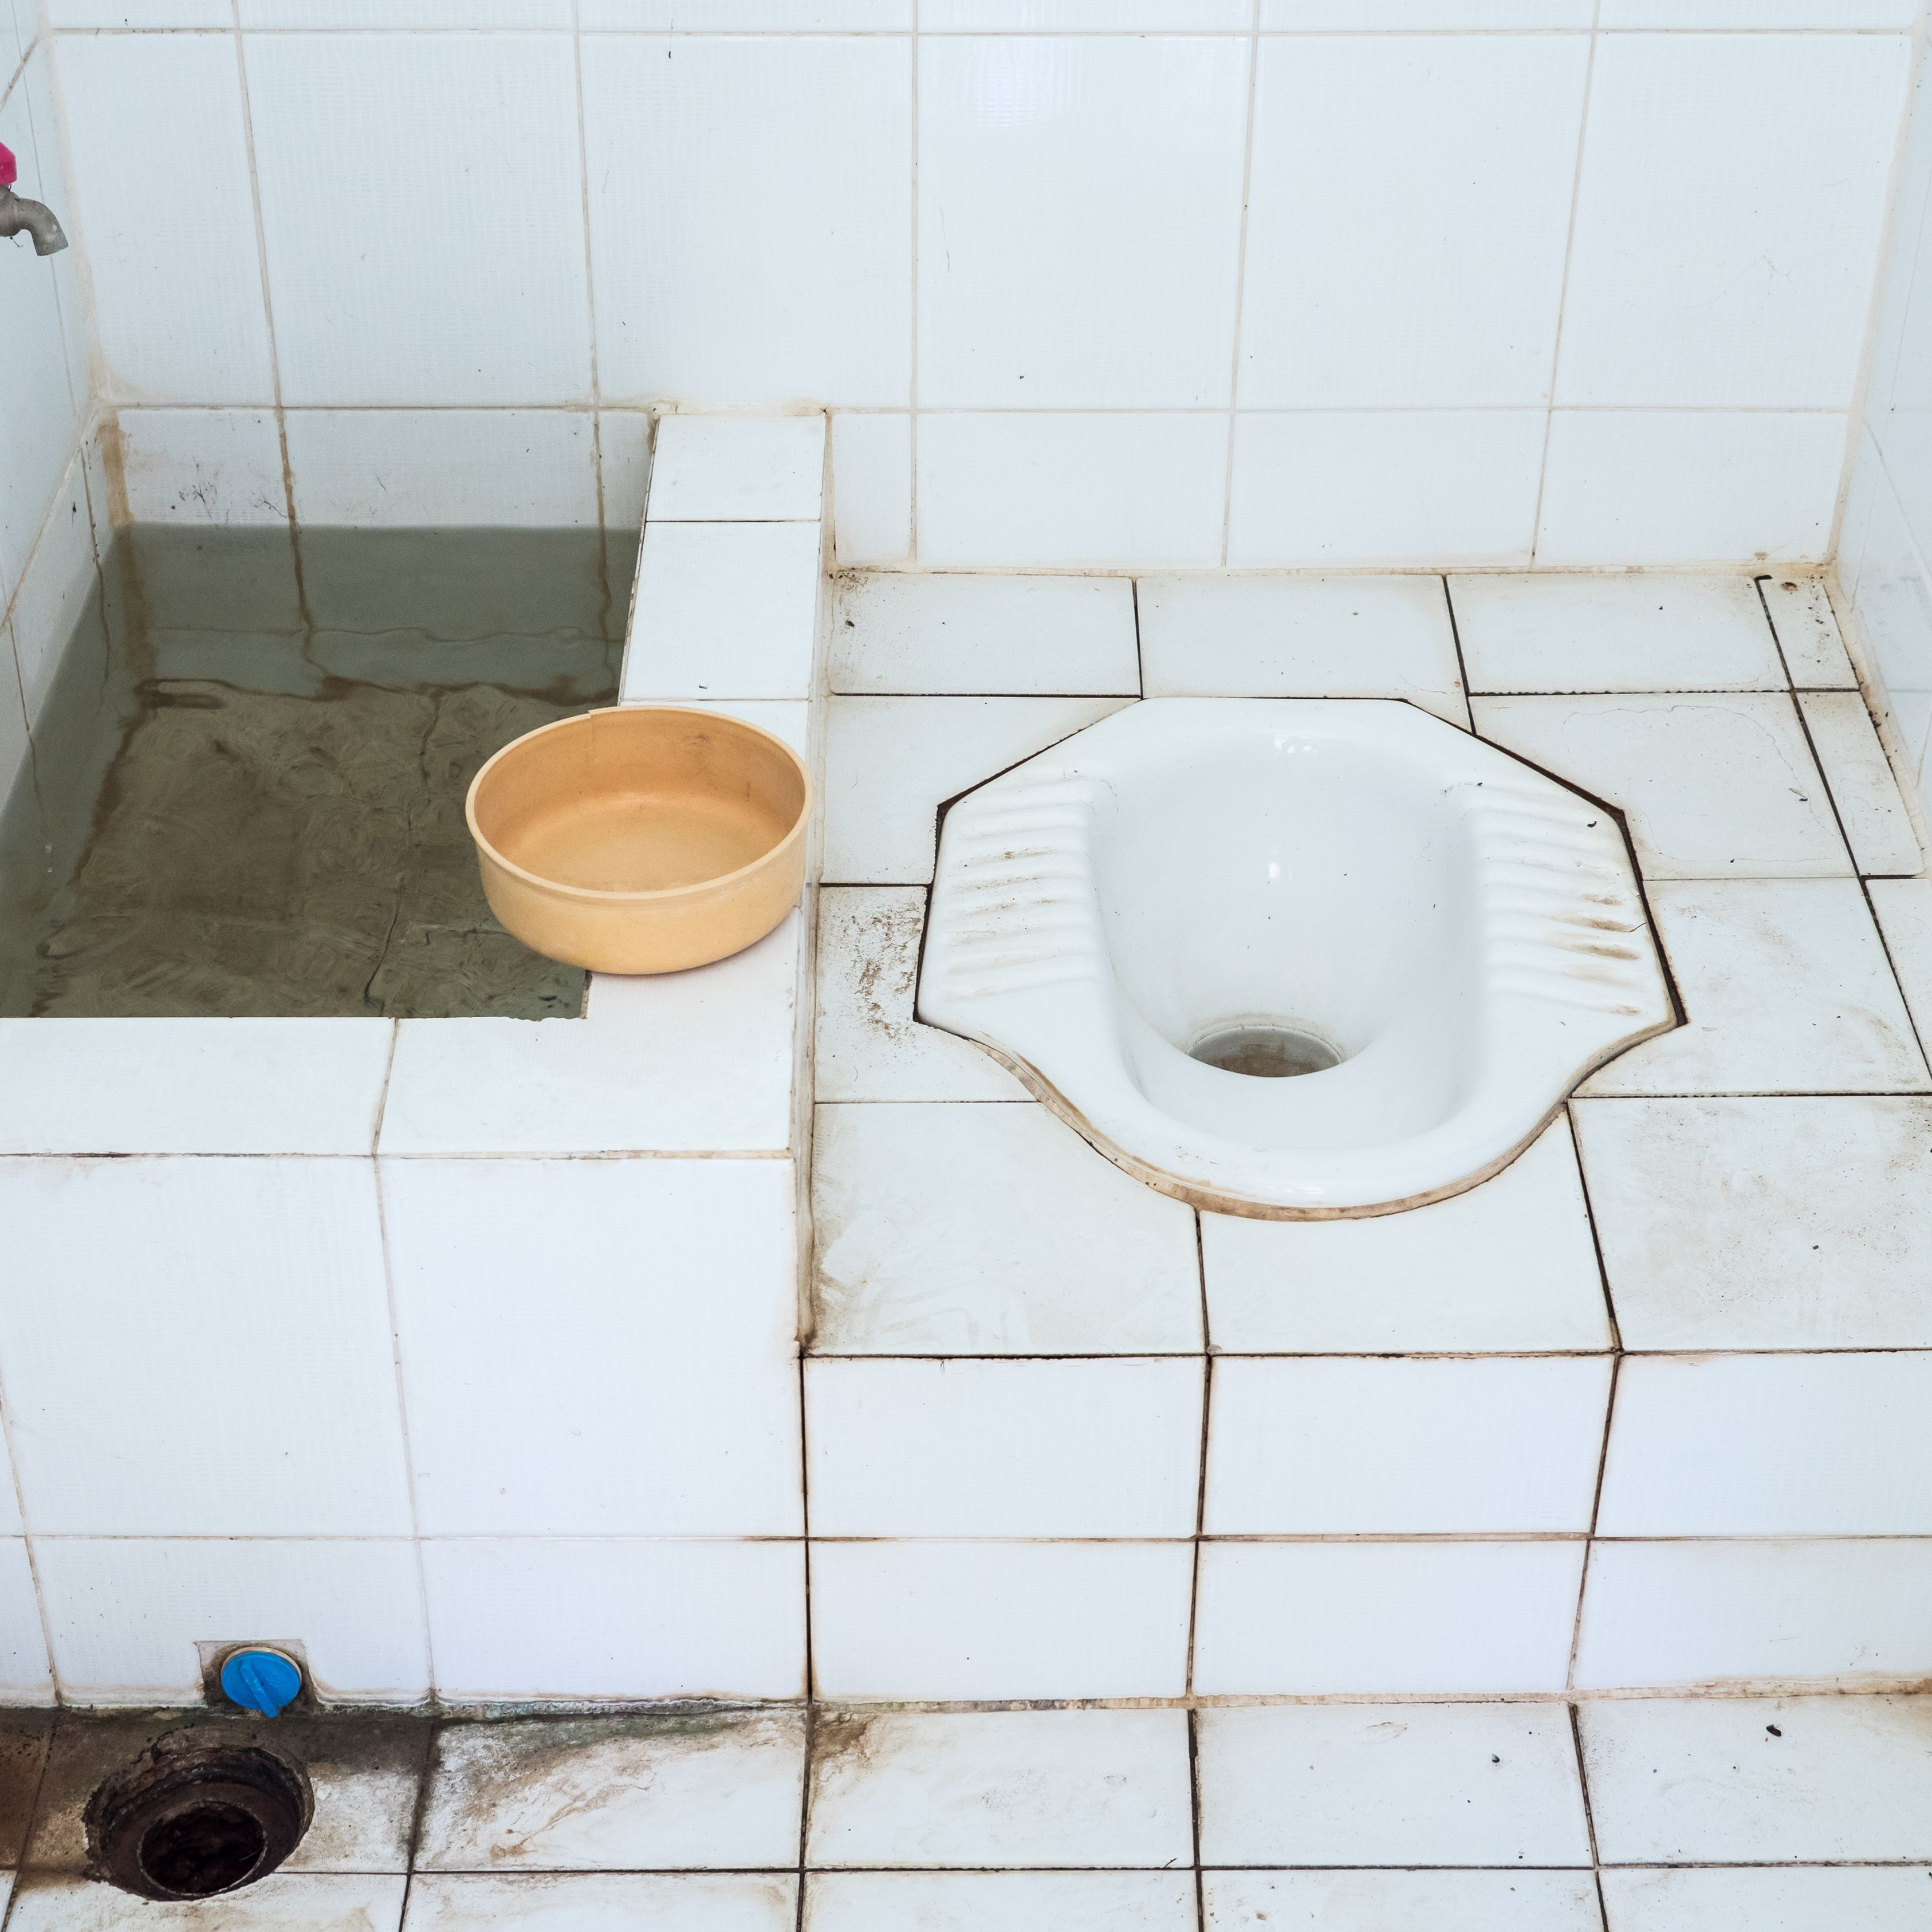 Squat Toilets In Asia Tips And What To Expect